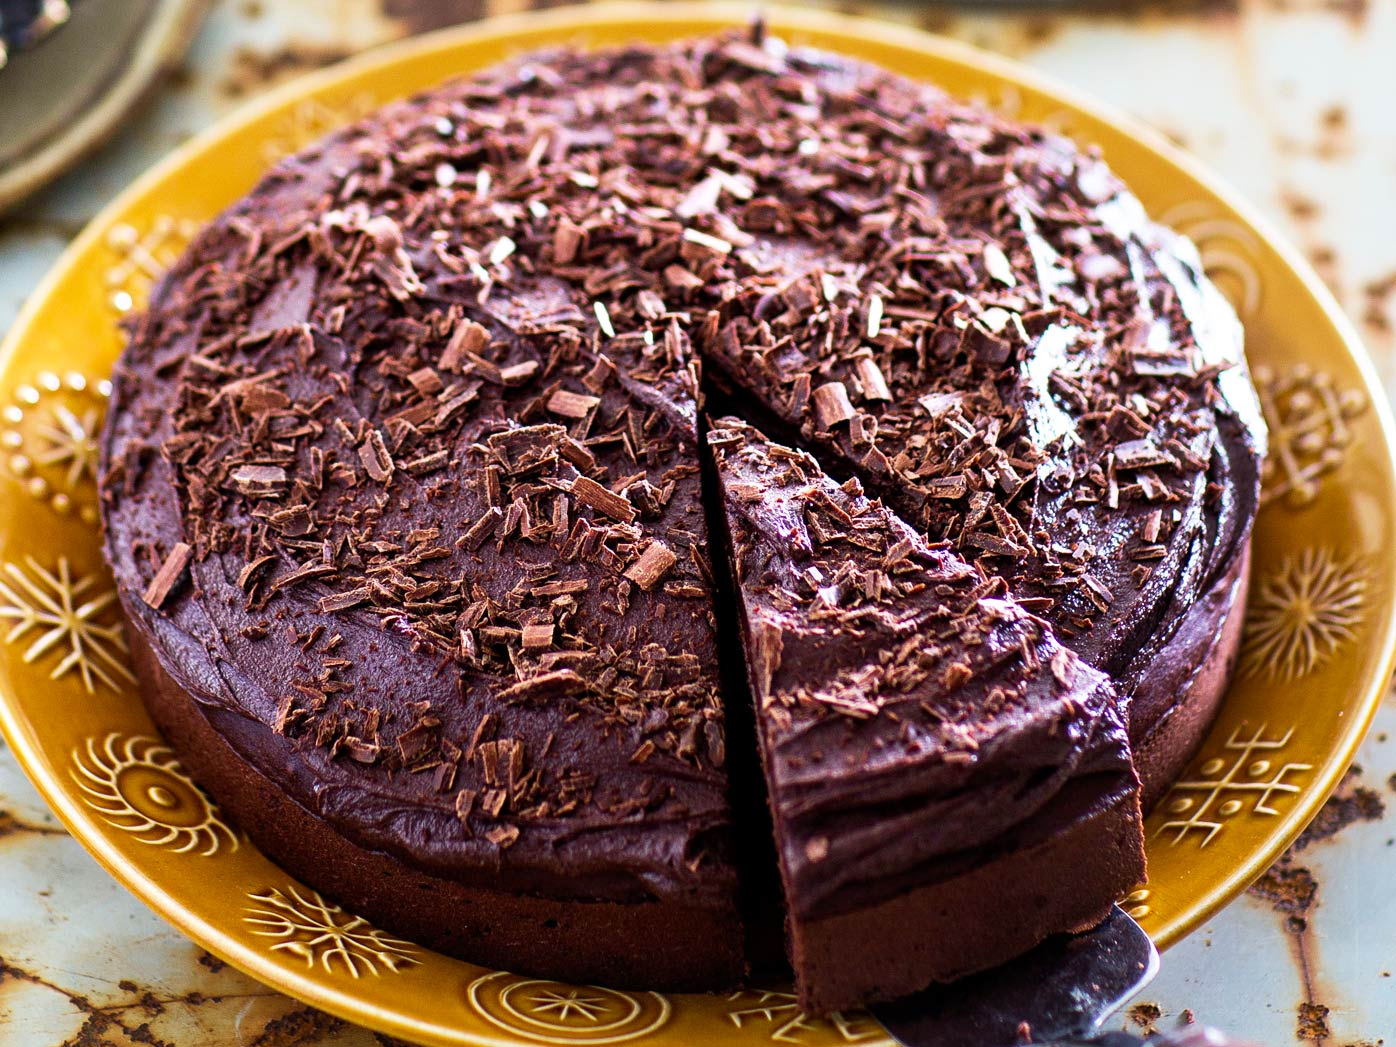 Gran's boiled chocolate cake